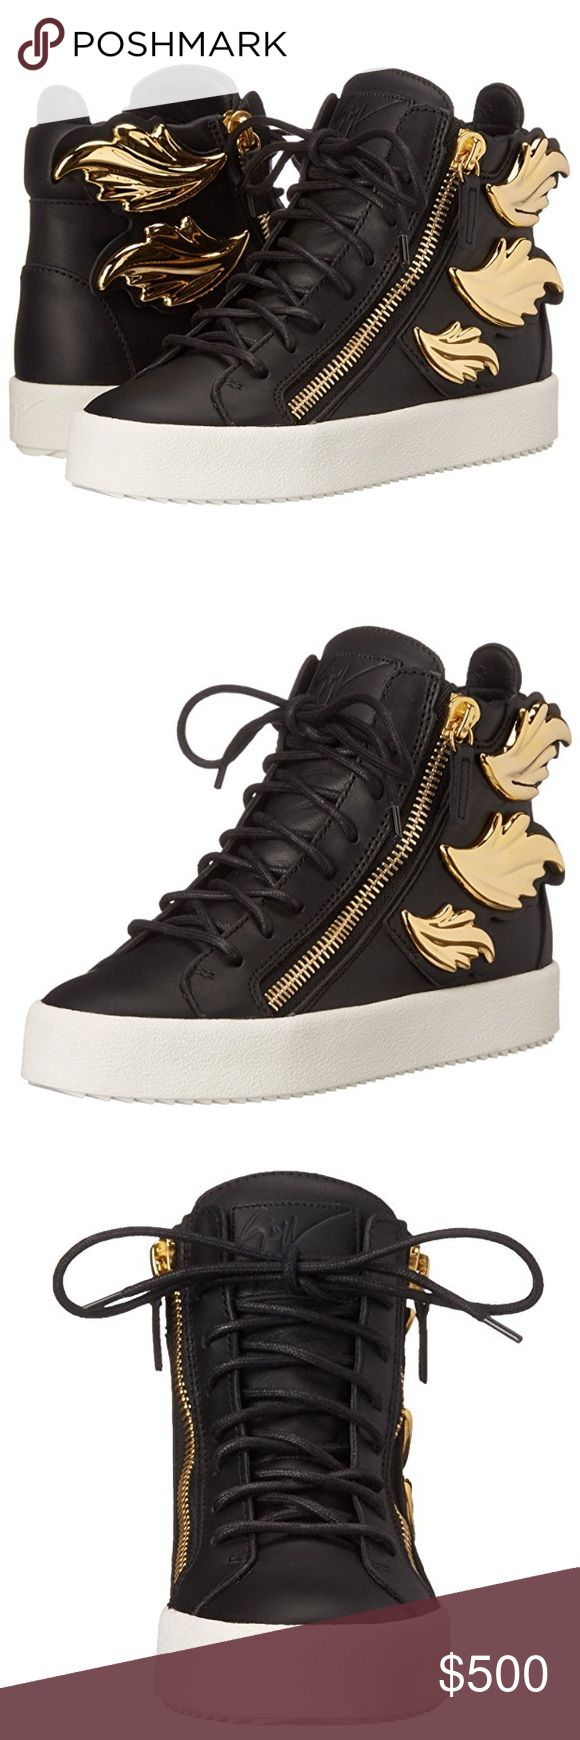 Giuseppe Zanotti Sneakers Brand new with original box and dust bag Giuseppe Zanotti Shoes Sneakers